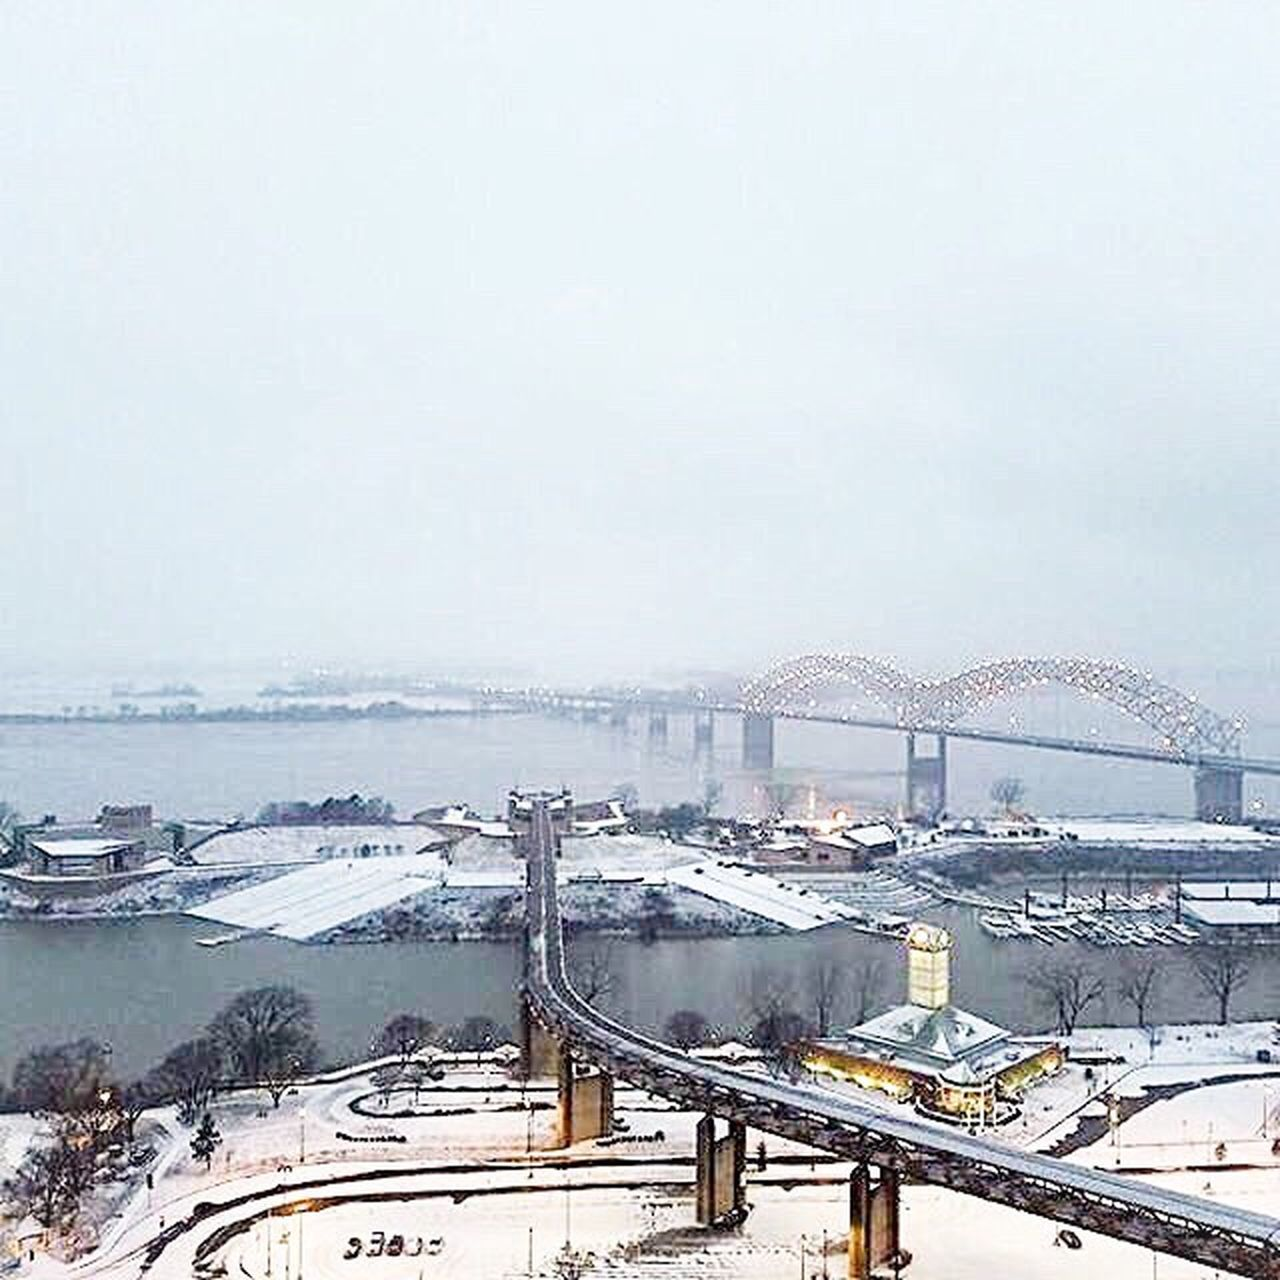 winter, cold temperature, snow, sea, bridge - man made structure, fog, outdoors, water, no people, day, built structure, nature, city, architecture, harbor, ferris wheel, building exterior, sky, cityscape, beauty in nature